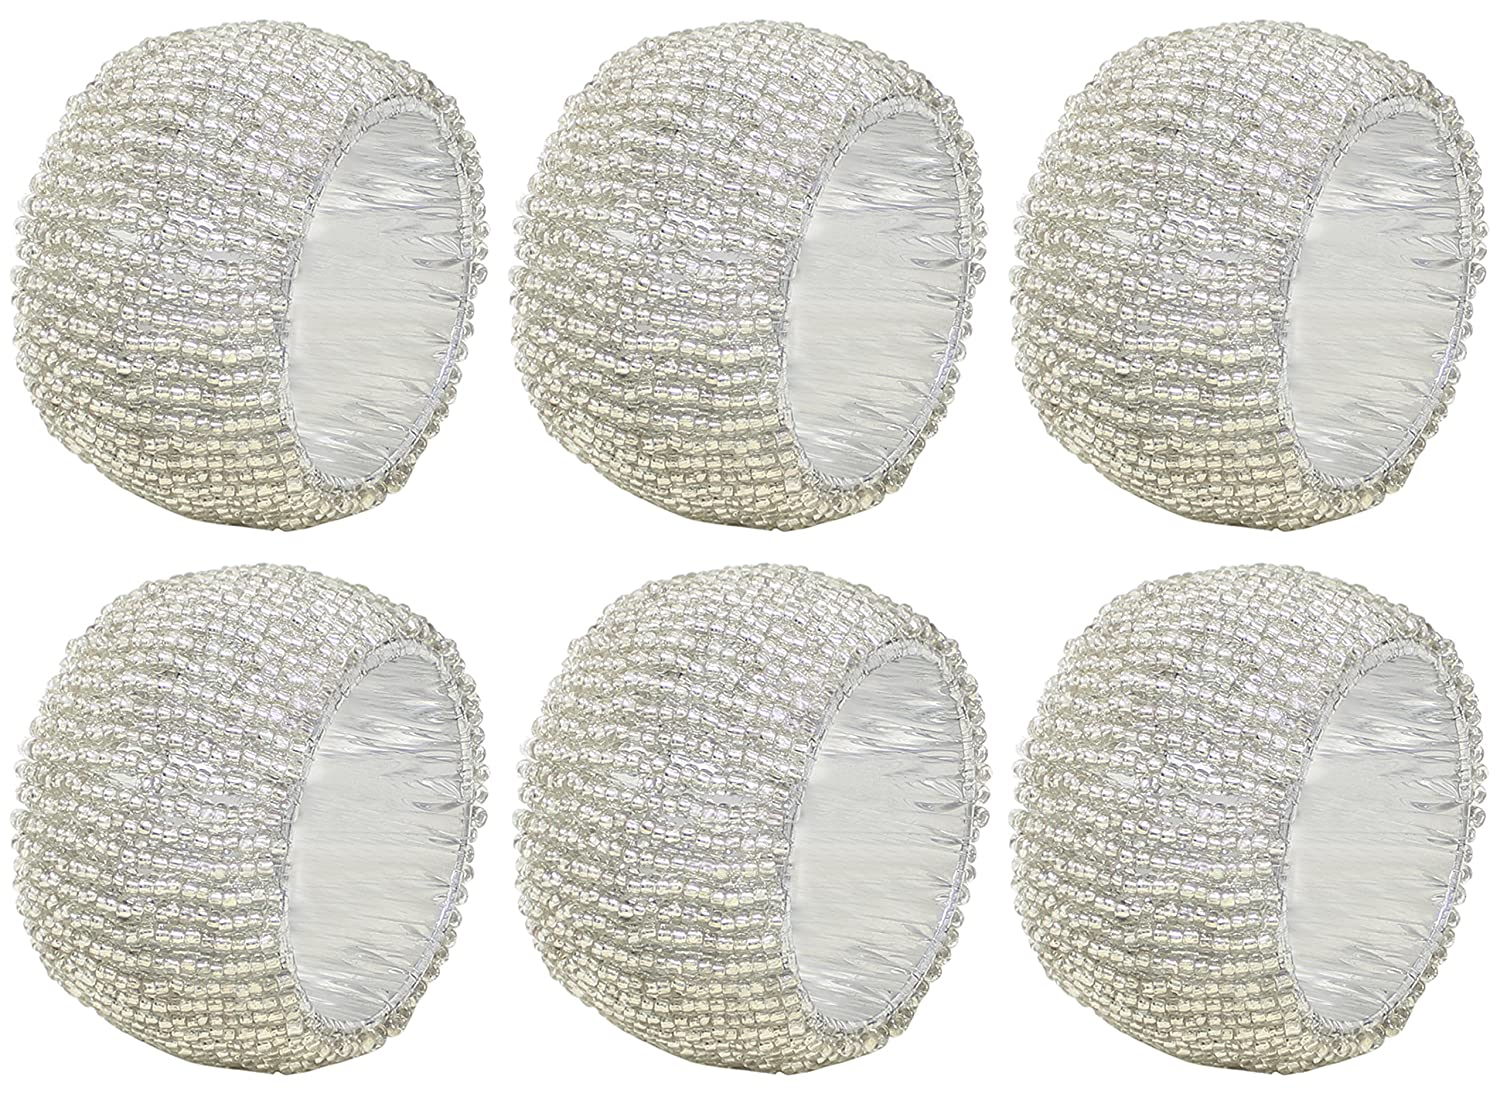 Set of 6 - napkin pack parcel hollow out round napkin rings for holiday dinner wedding party - dia 6.4 cm (argento) SKAVIJ RLM-napkin_ring_beaded_006_6